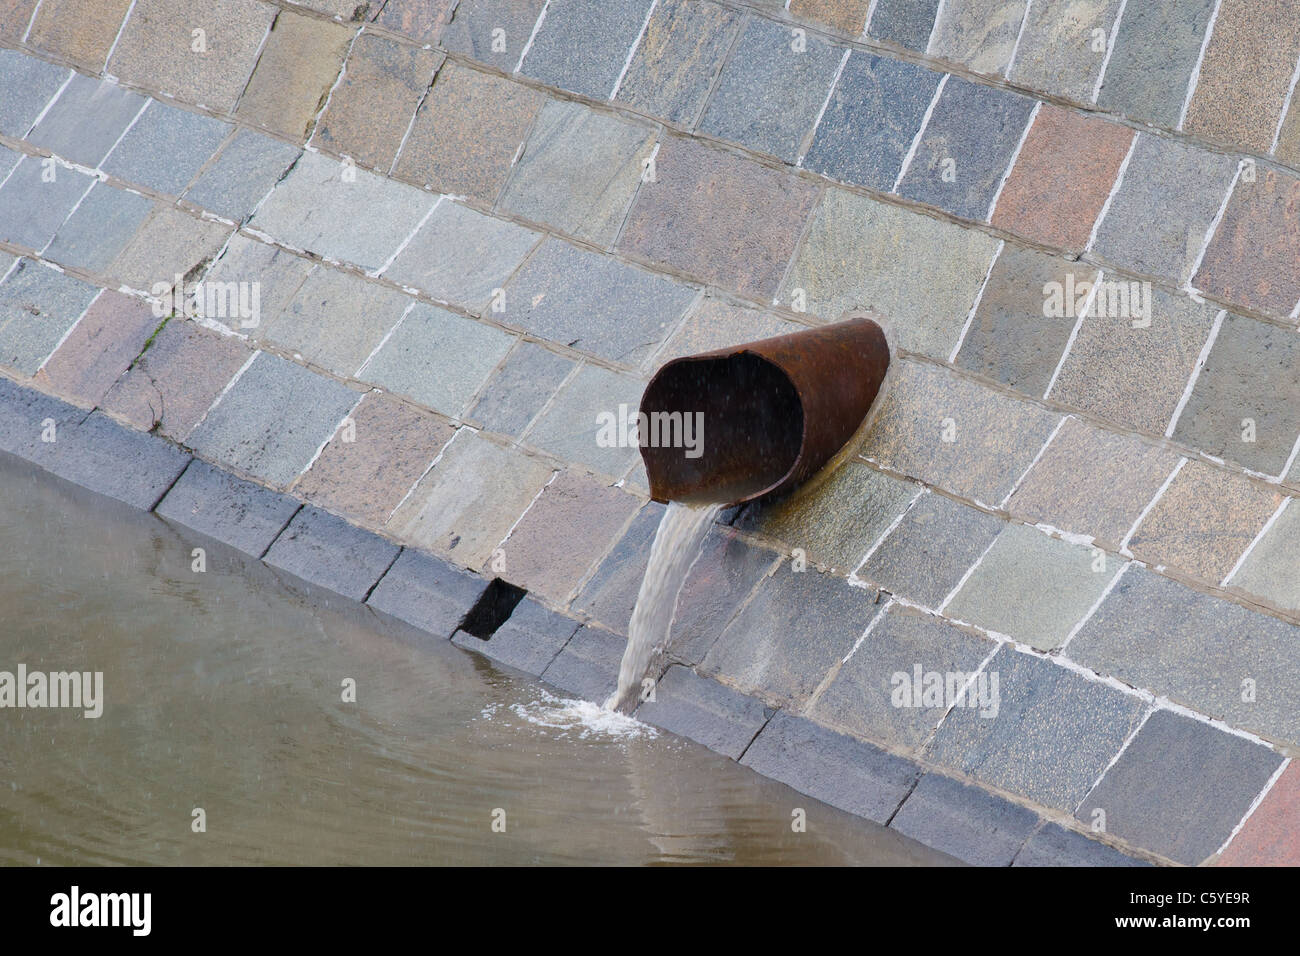 Industrial waste water are discharged into a river withing the city boundaries. Water pollution issues - Stock Image